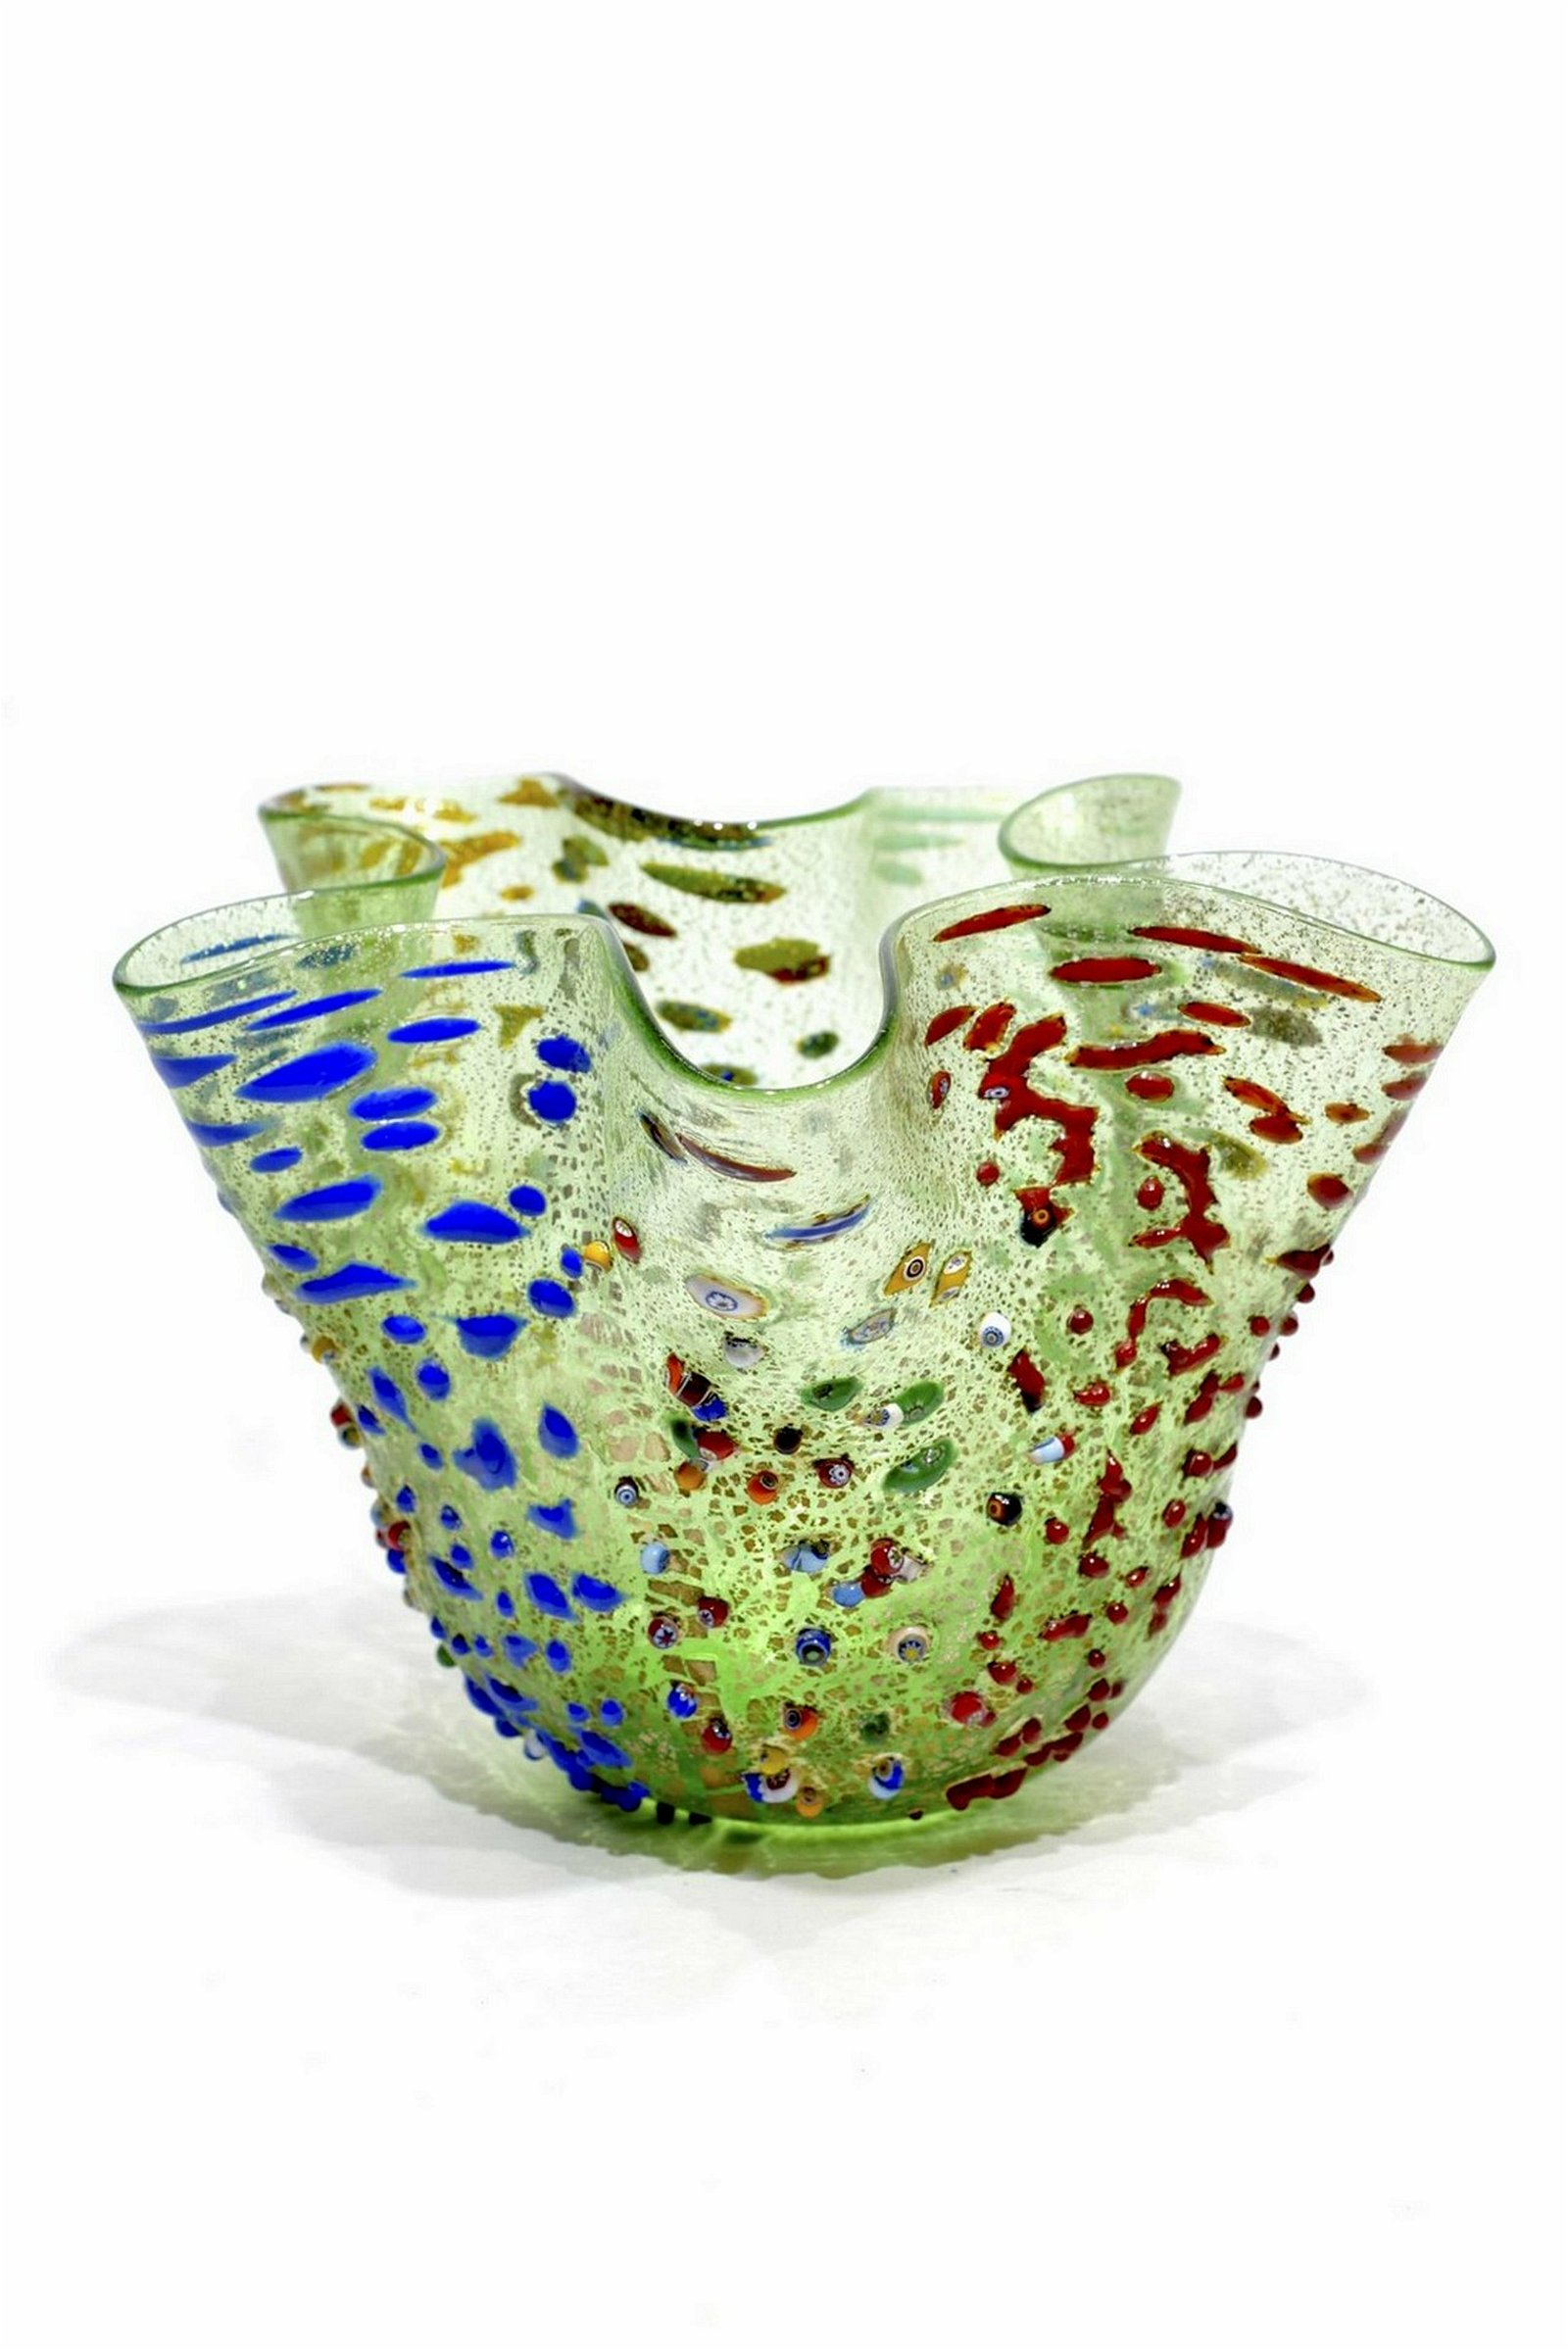 Murano glass relief murrine vase fazzoletto